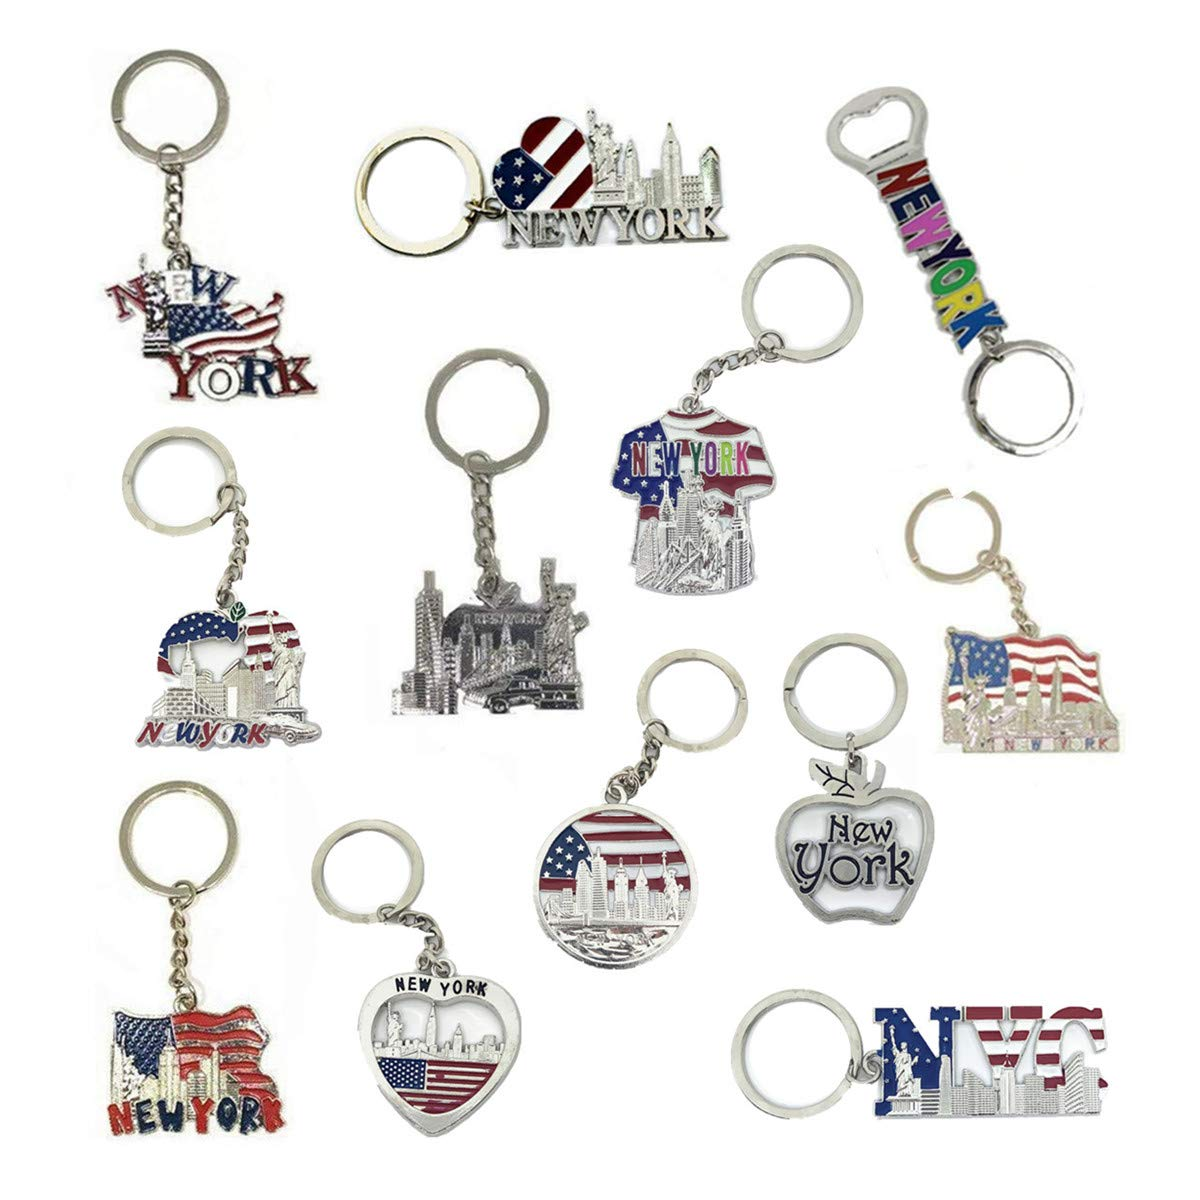 12 Pack New York NYC Metal Keychain Ring Bundle Souvenir Collection, Gift Set - Includes Empire State, Freedom Tower, Statue Of Liberty, USA Flag, And More by TSY TOOL